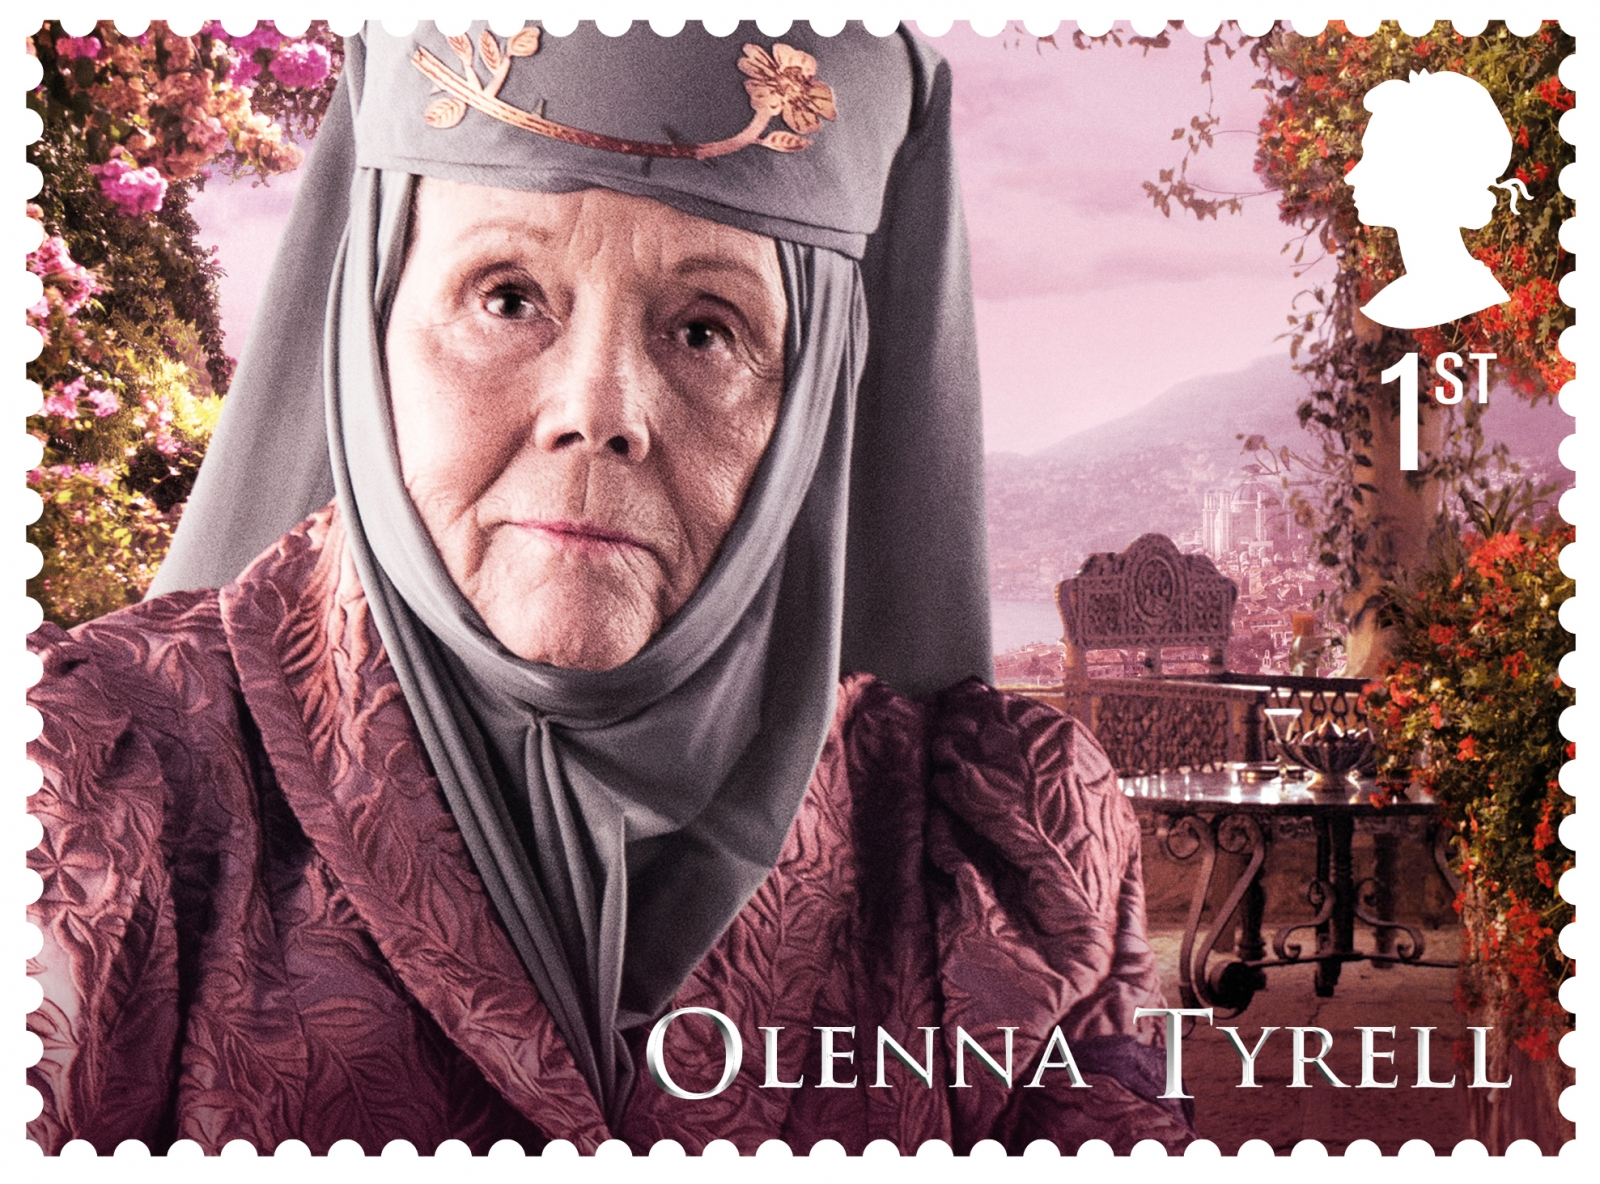 'Game of Thrones' characters in new set of British stamps